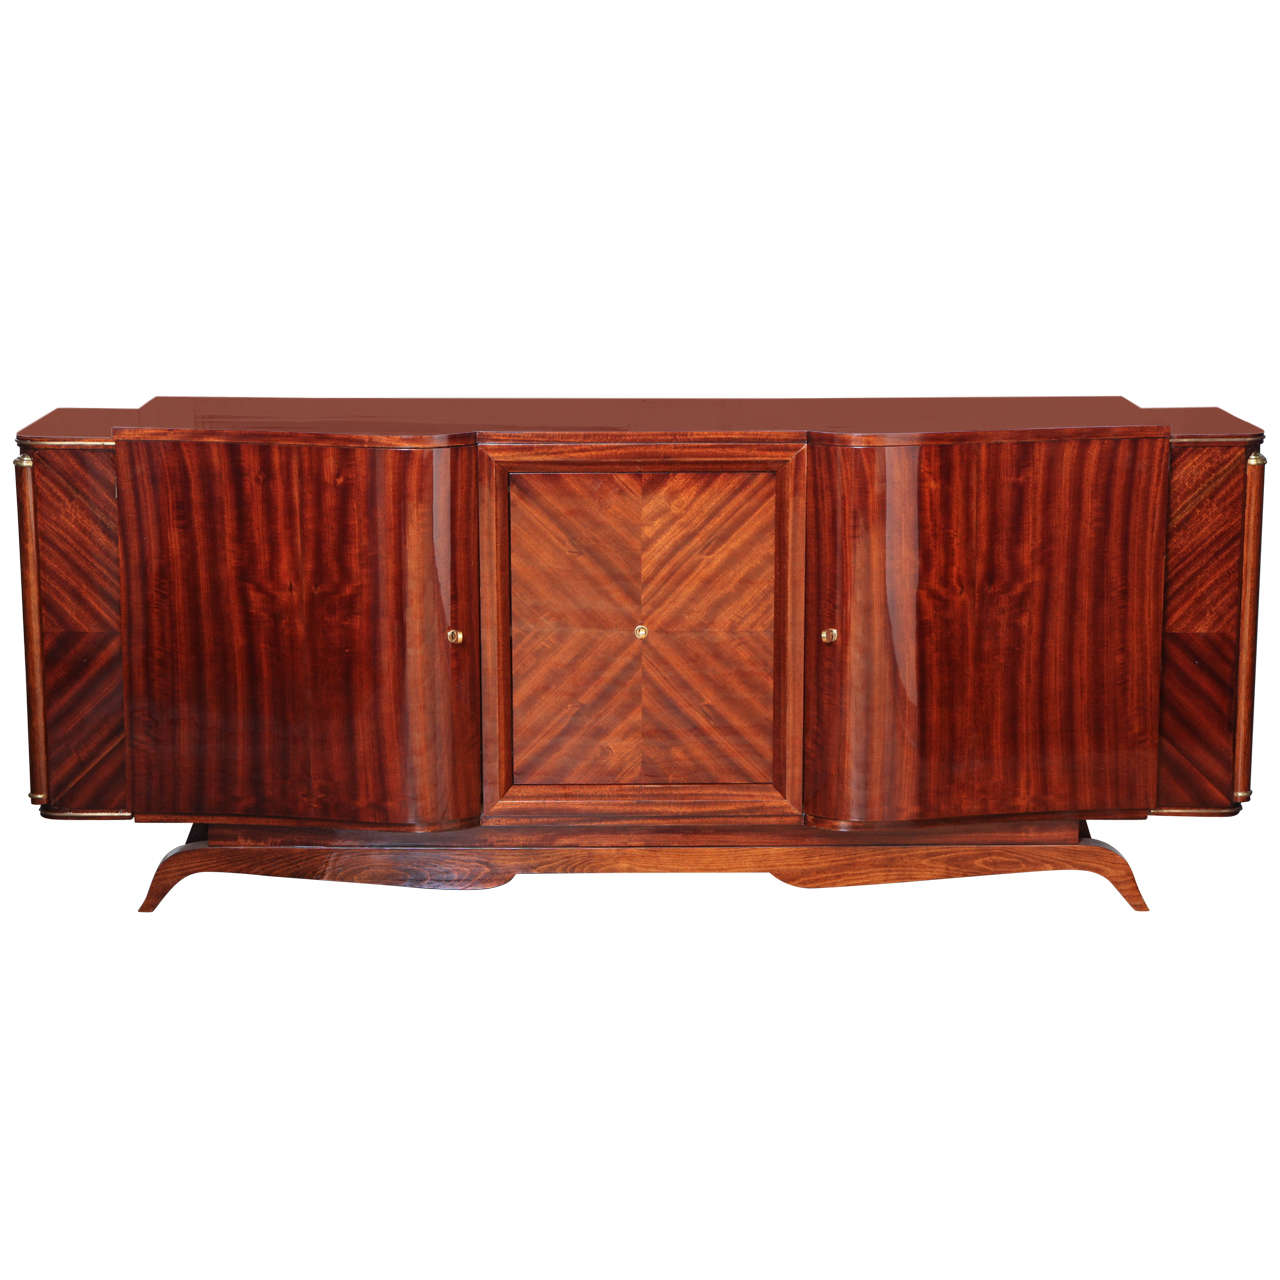 Unique Design Art Deco Sideboard or Bar For Sale